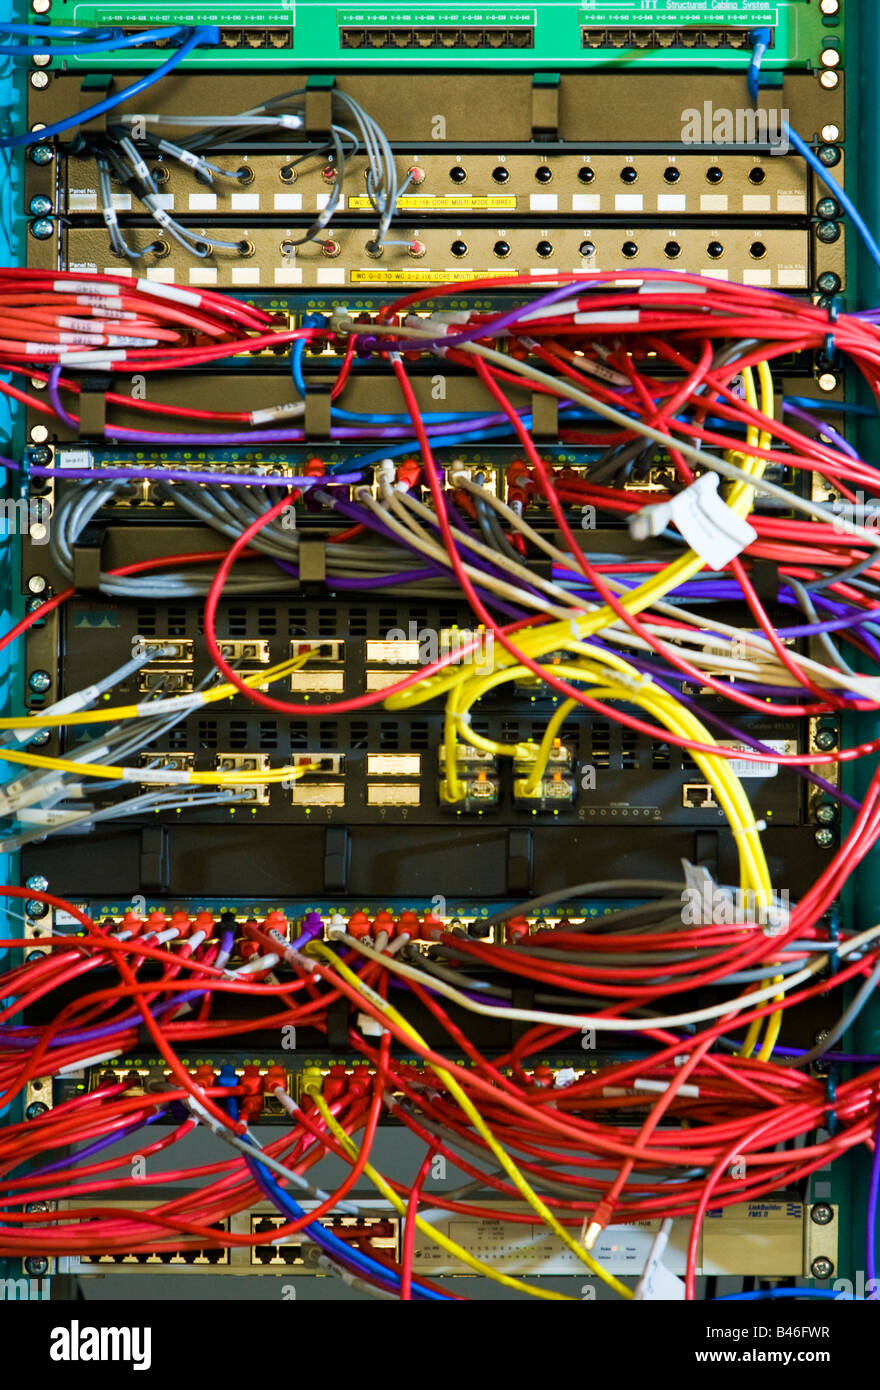 hight resolution of computer cables ethernet network rack server connection